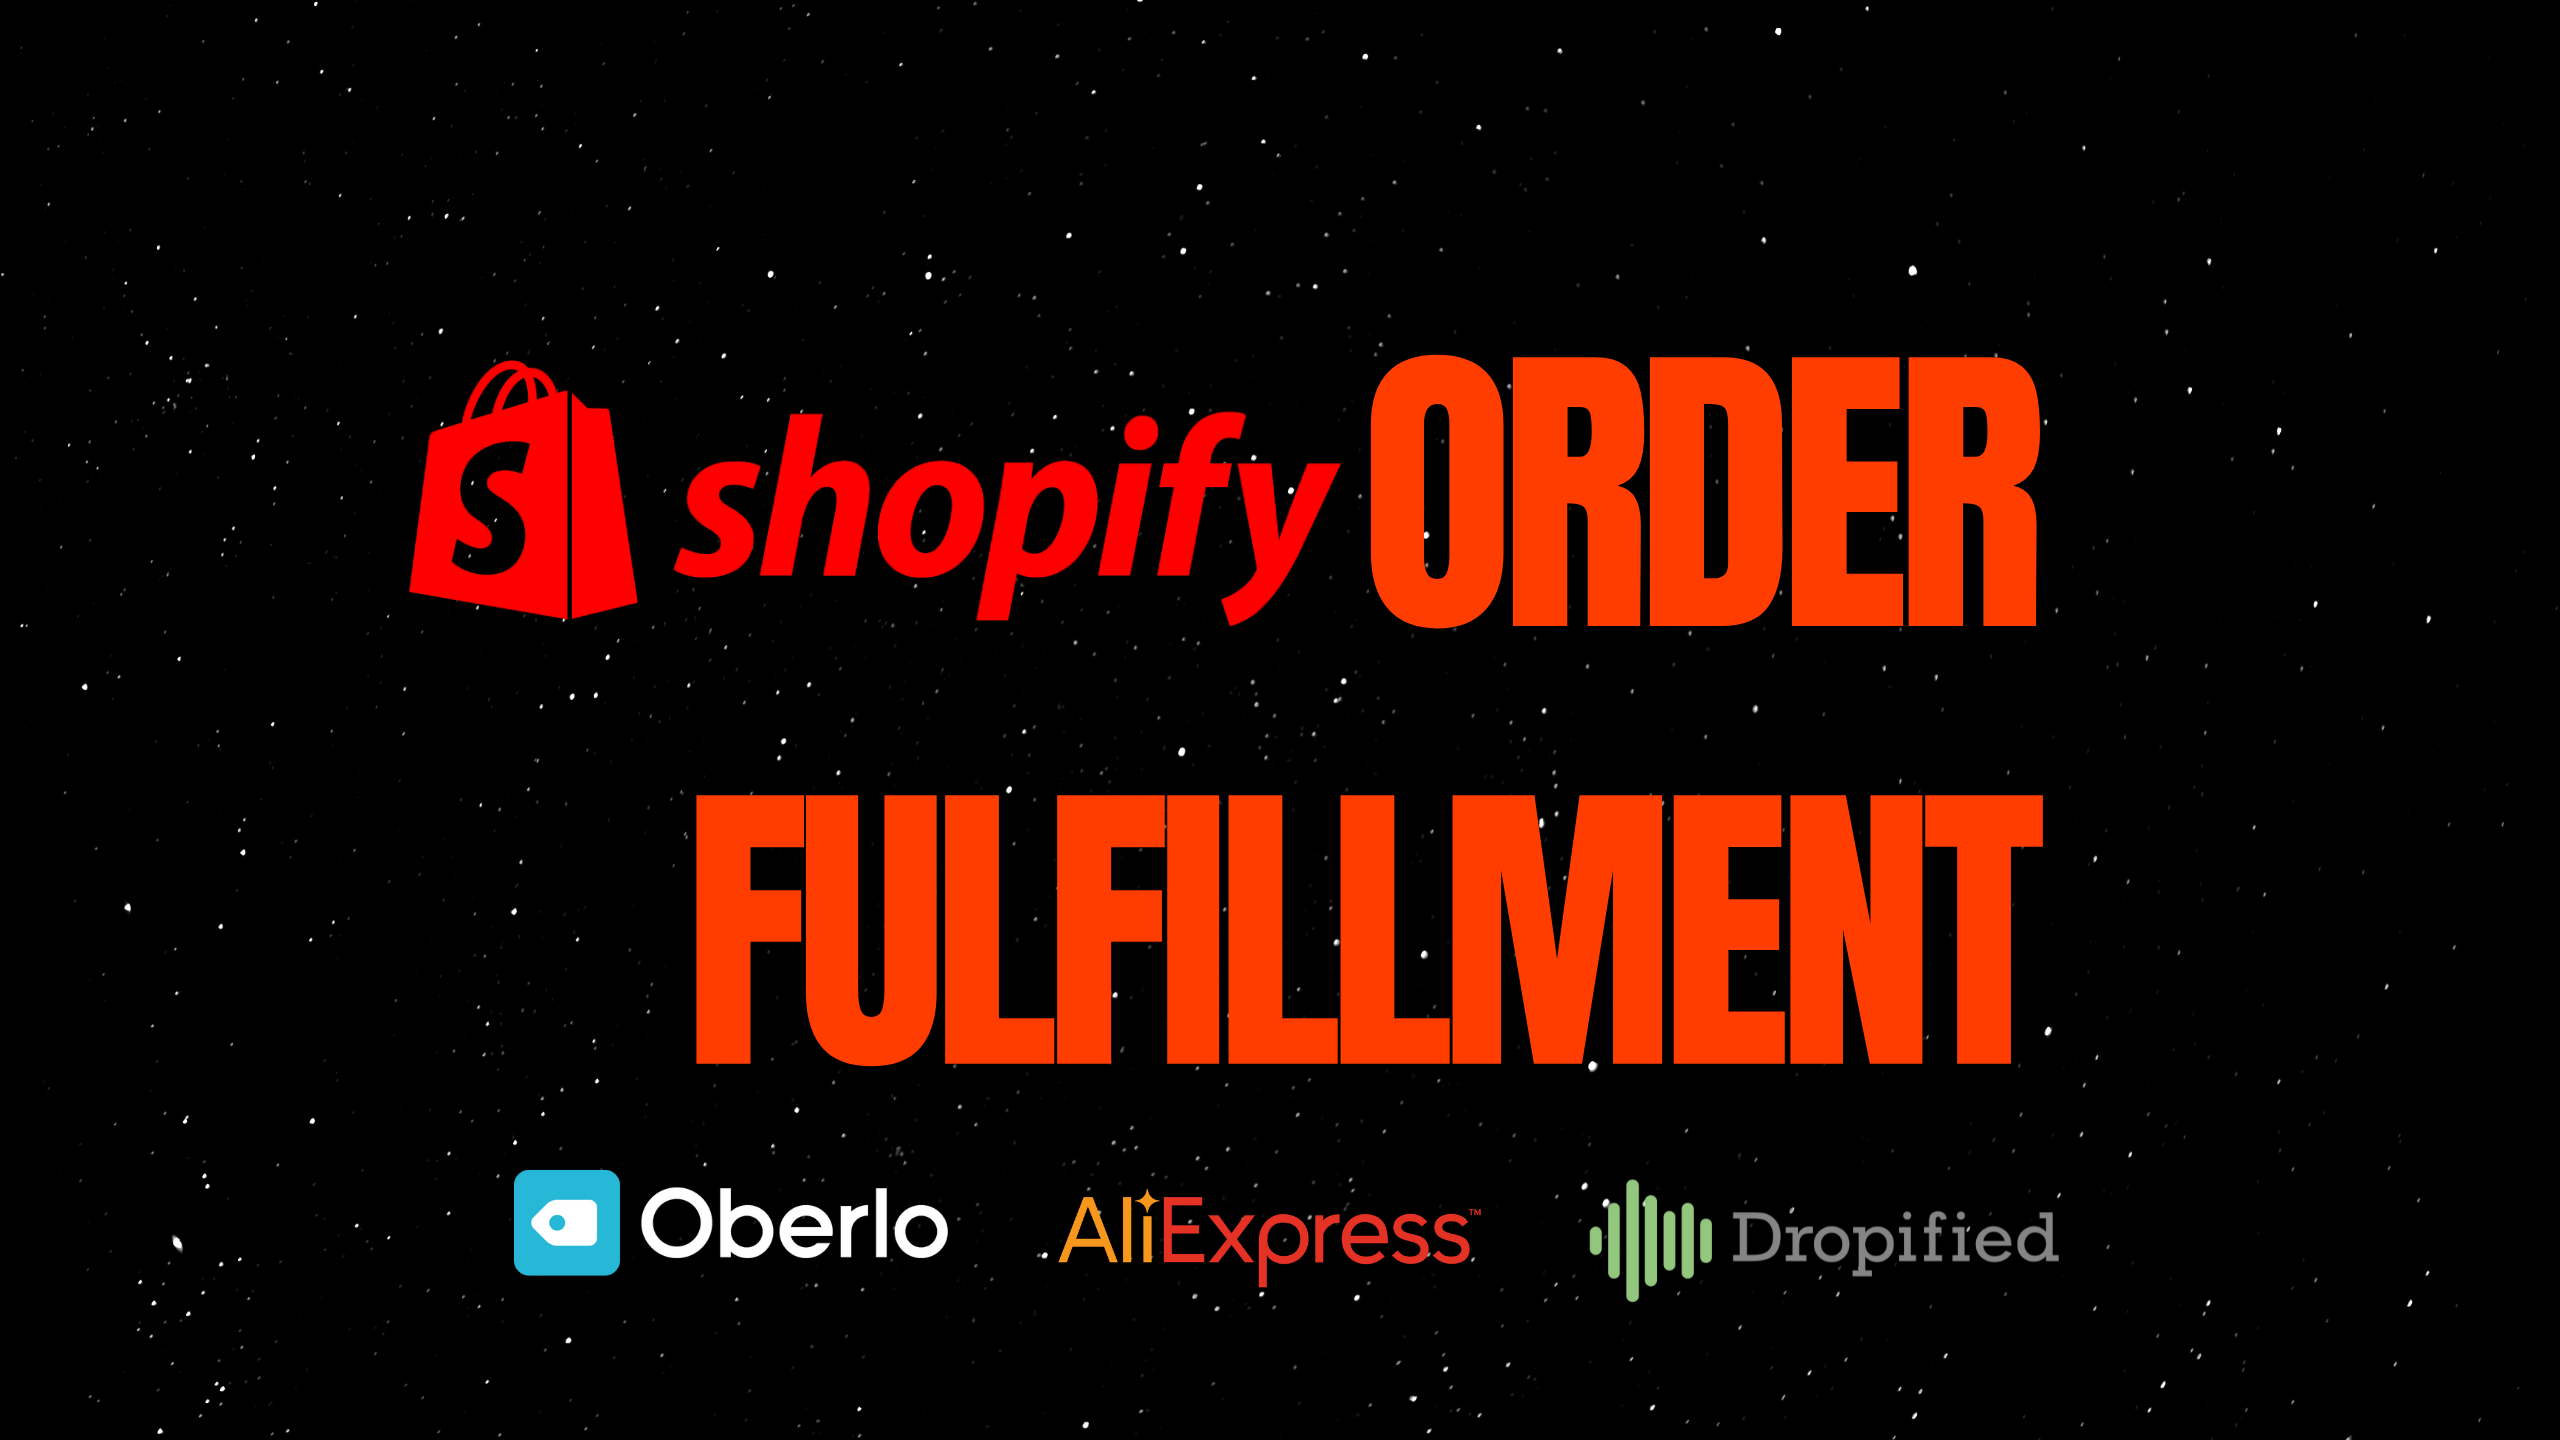 I will be your Shopify dropshipping 100 order fulfillment Virtual Assistant